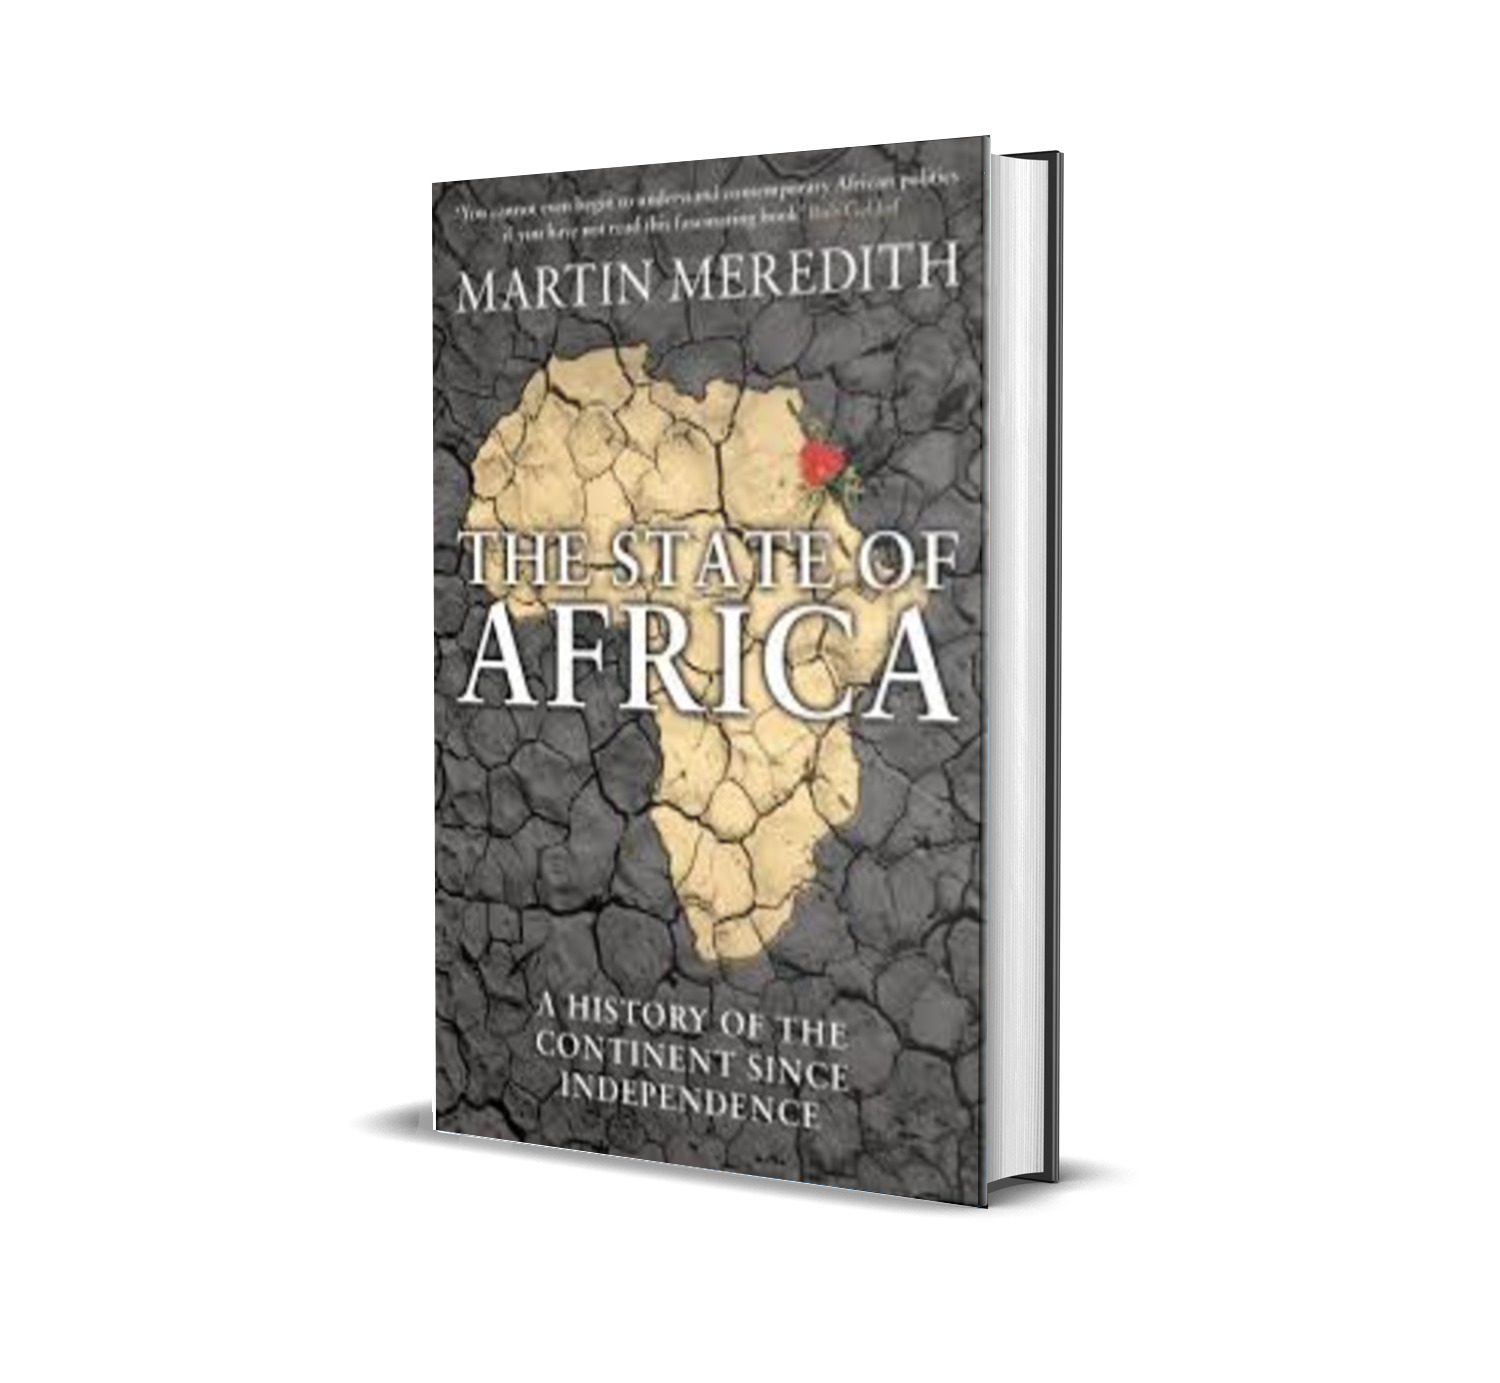 The State Of Africa : a history of the continent since independence - Martin Meredith